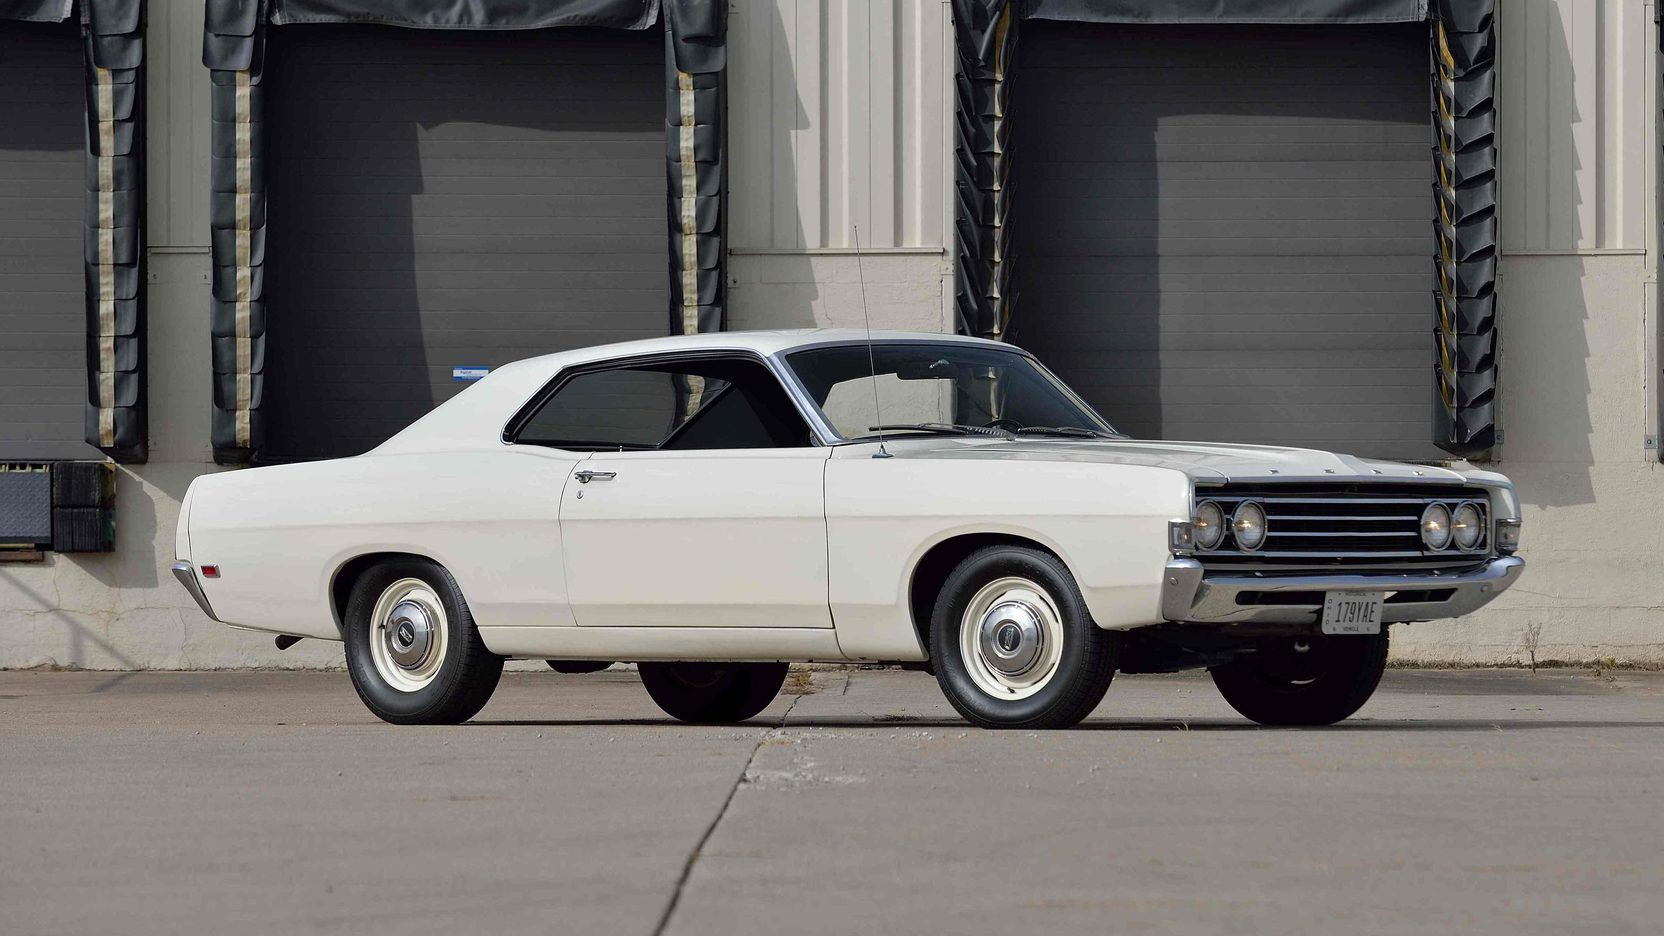 1969 Ford Torino F185 Kansas City 2016 In 2020 Ford Torino Ford Ford Fairlane